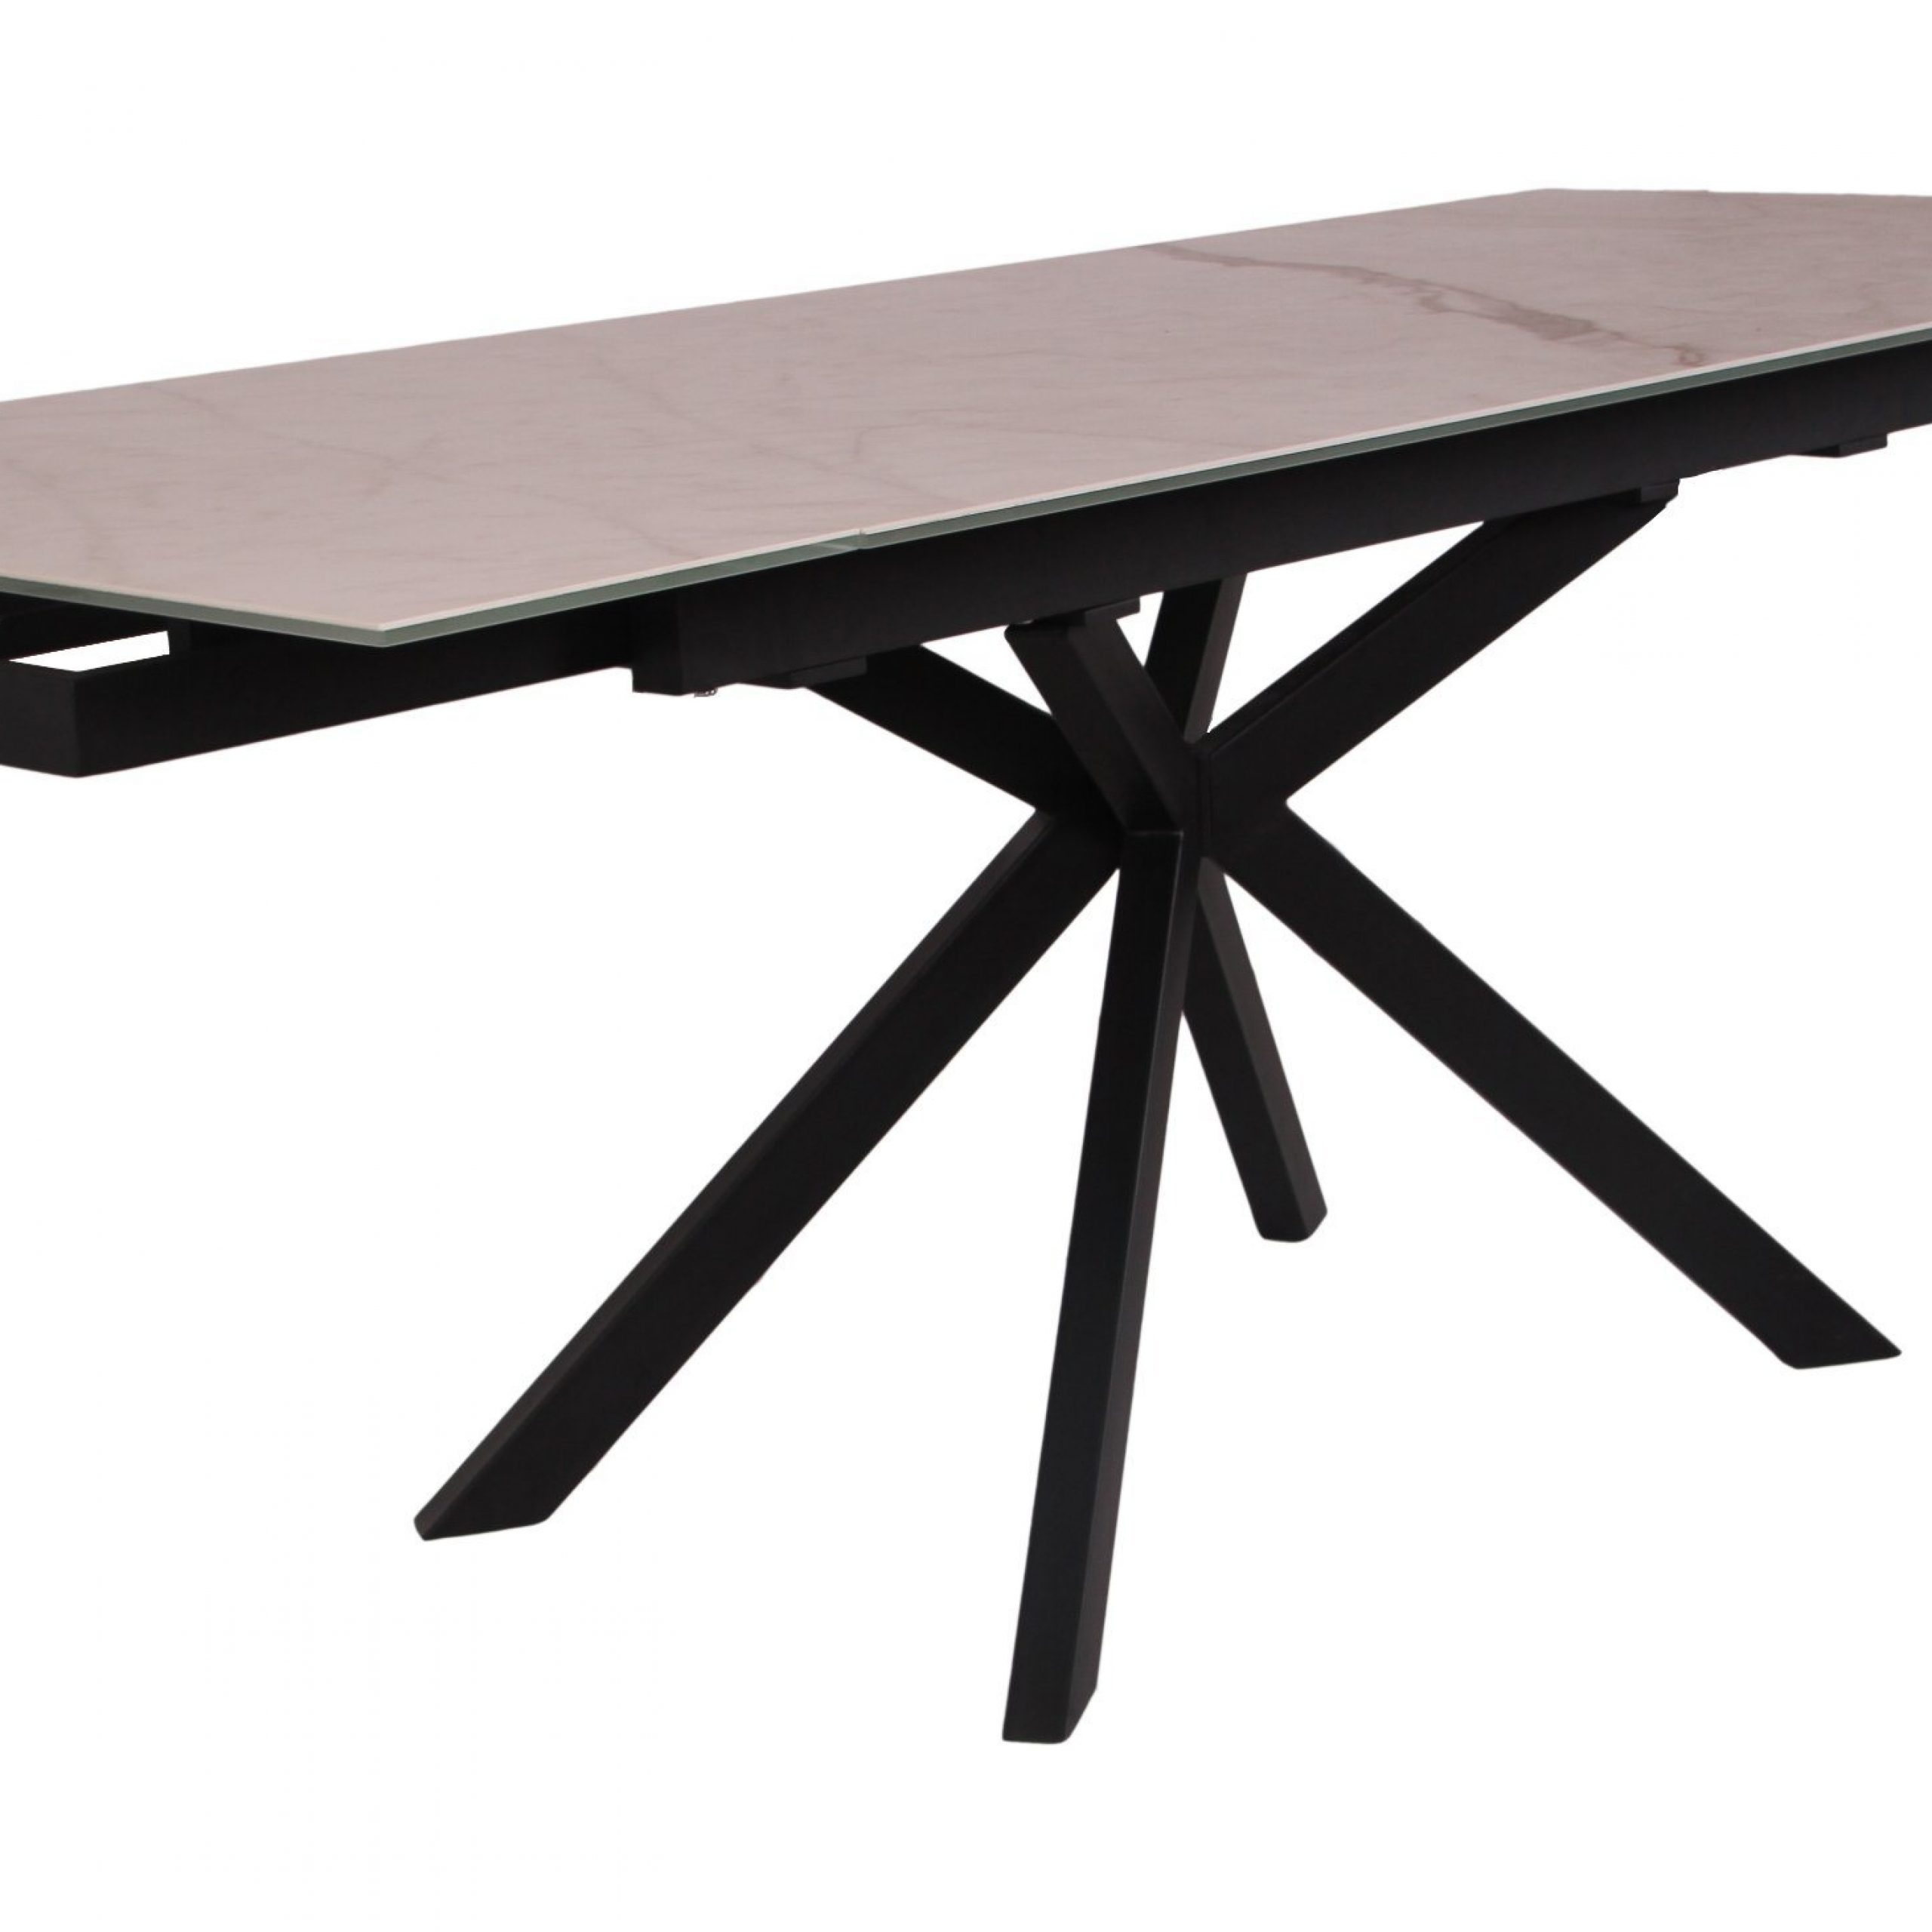 China Extension Iron Glass Top With Metal Legs Dining Table With Regard To Well Known Iron Wood Dining Tables With Metal Legs (View 17 of 25)